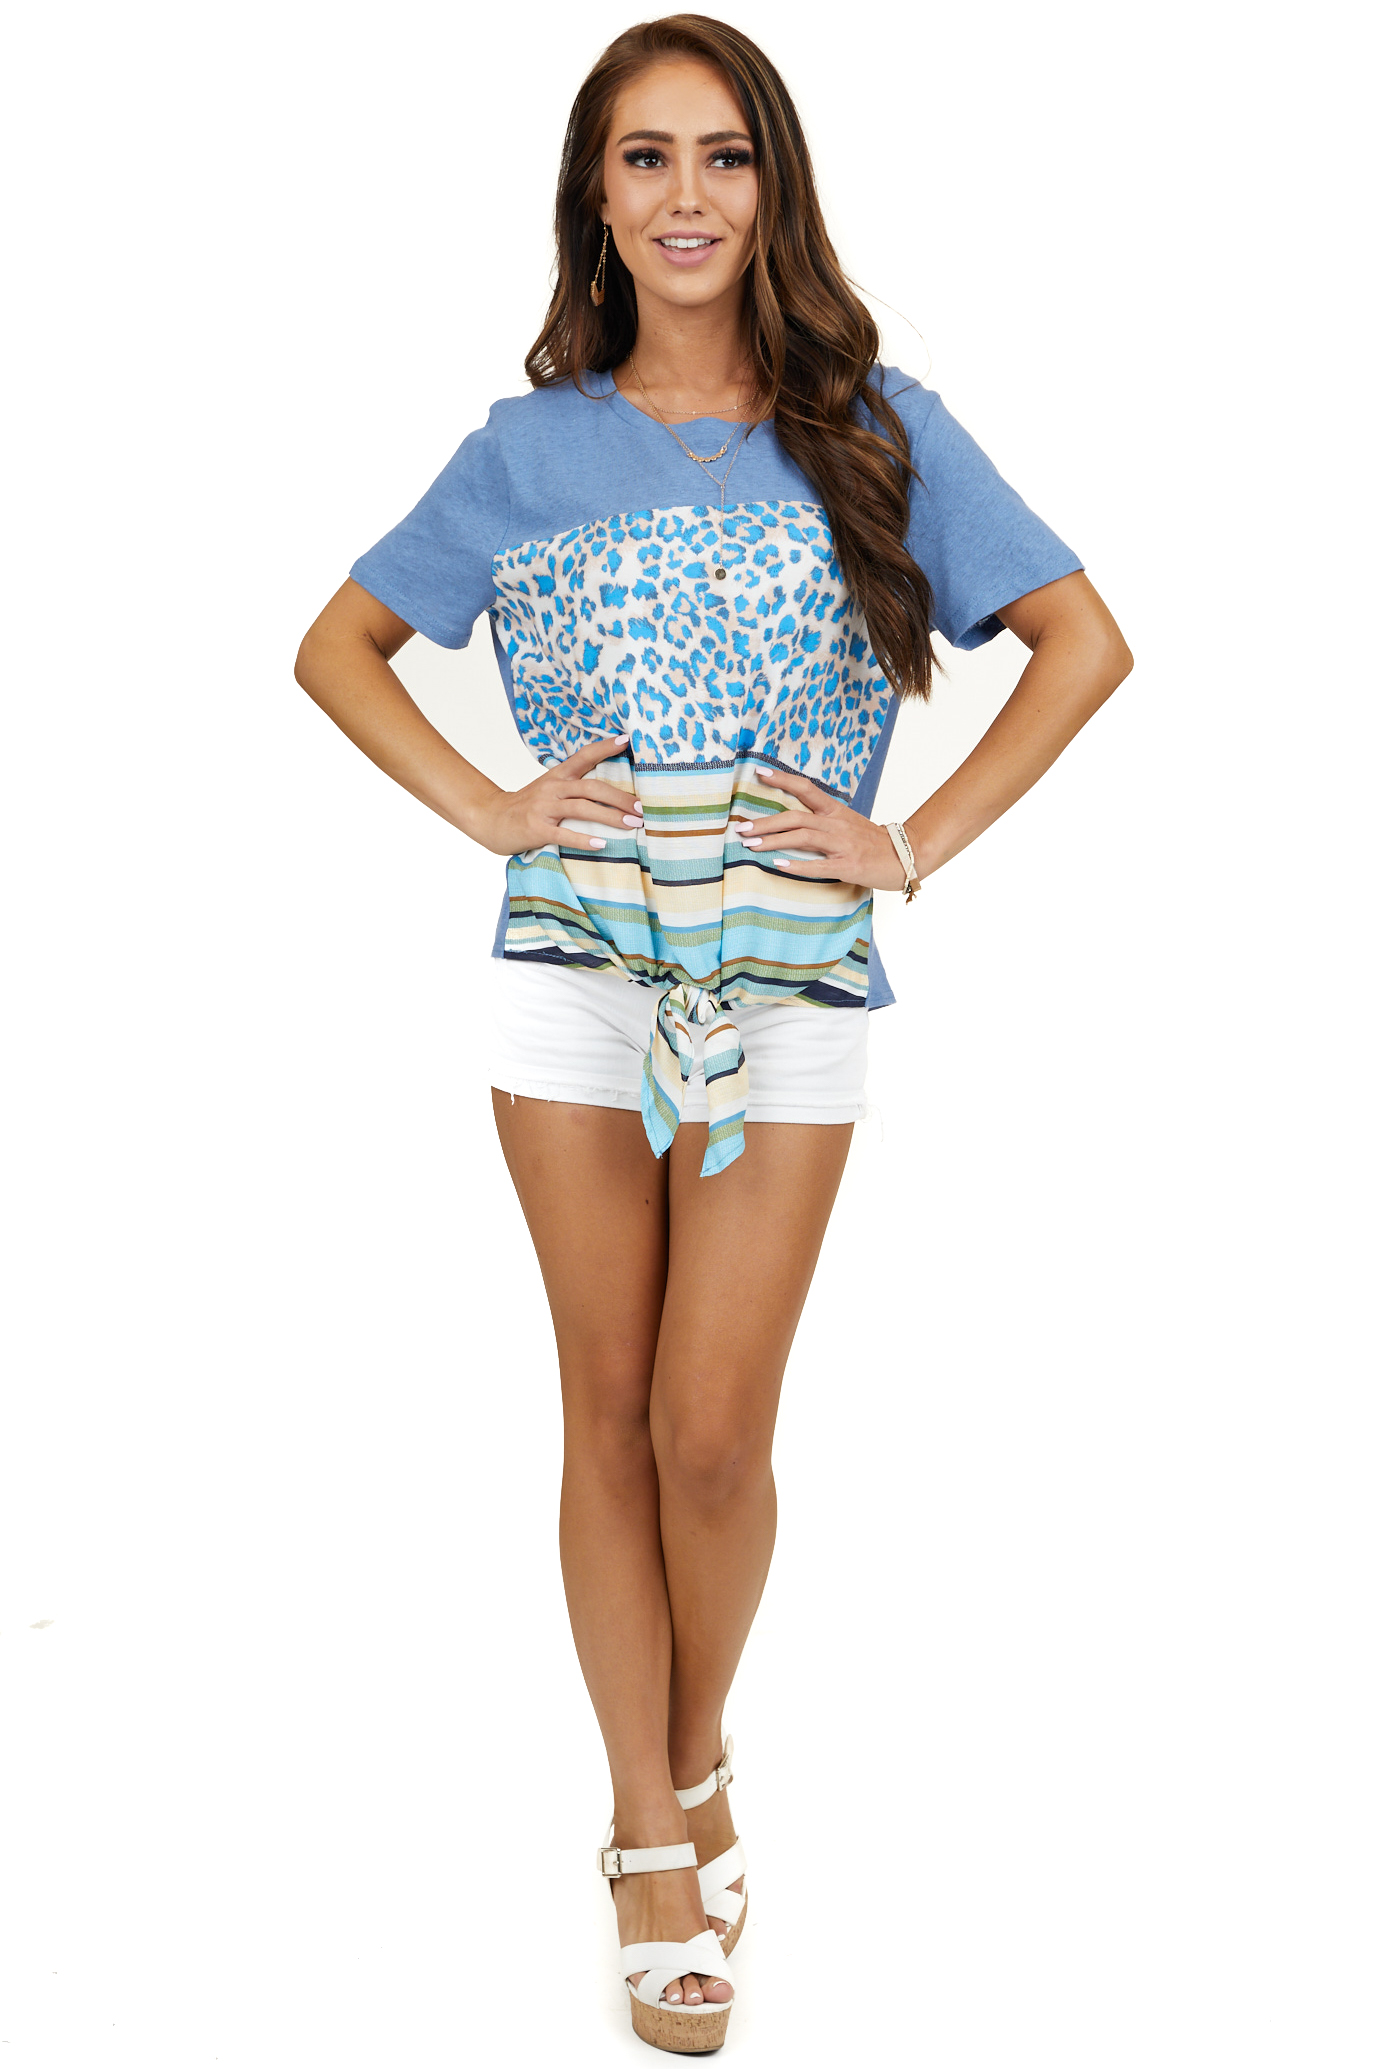 Dusty Blue Multi Print Short Sleeve Top with Front Tie